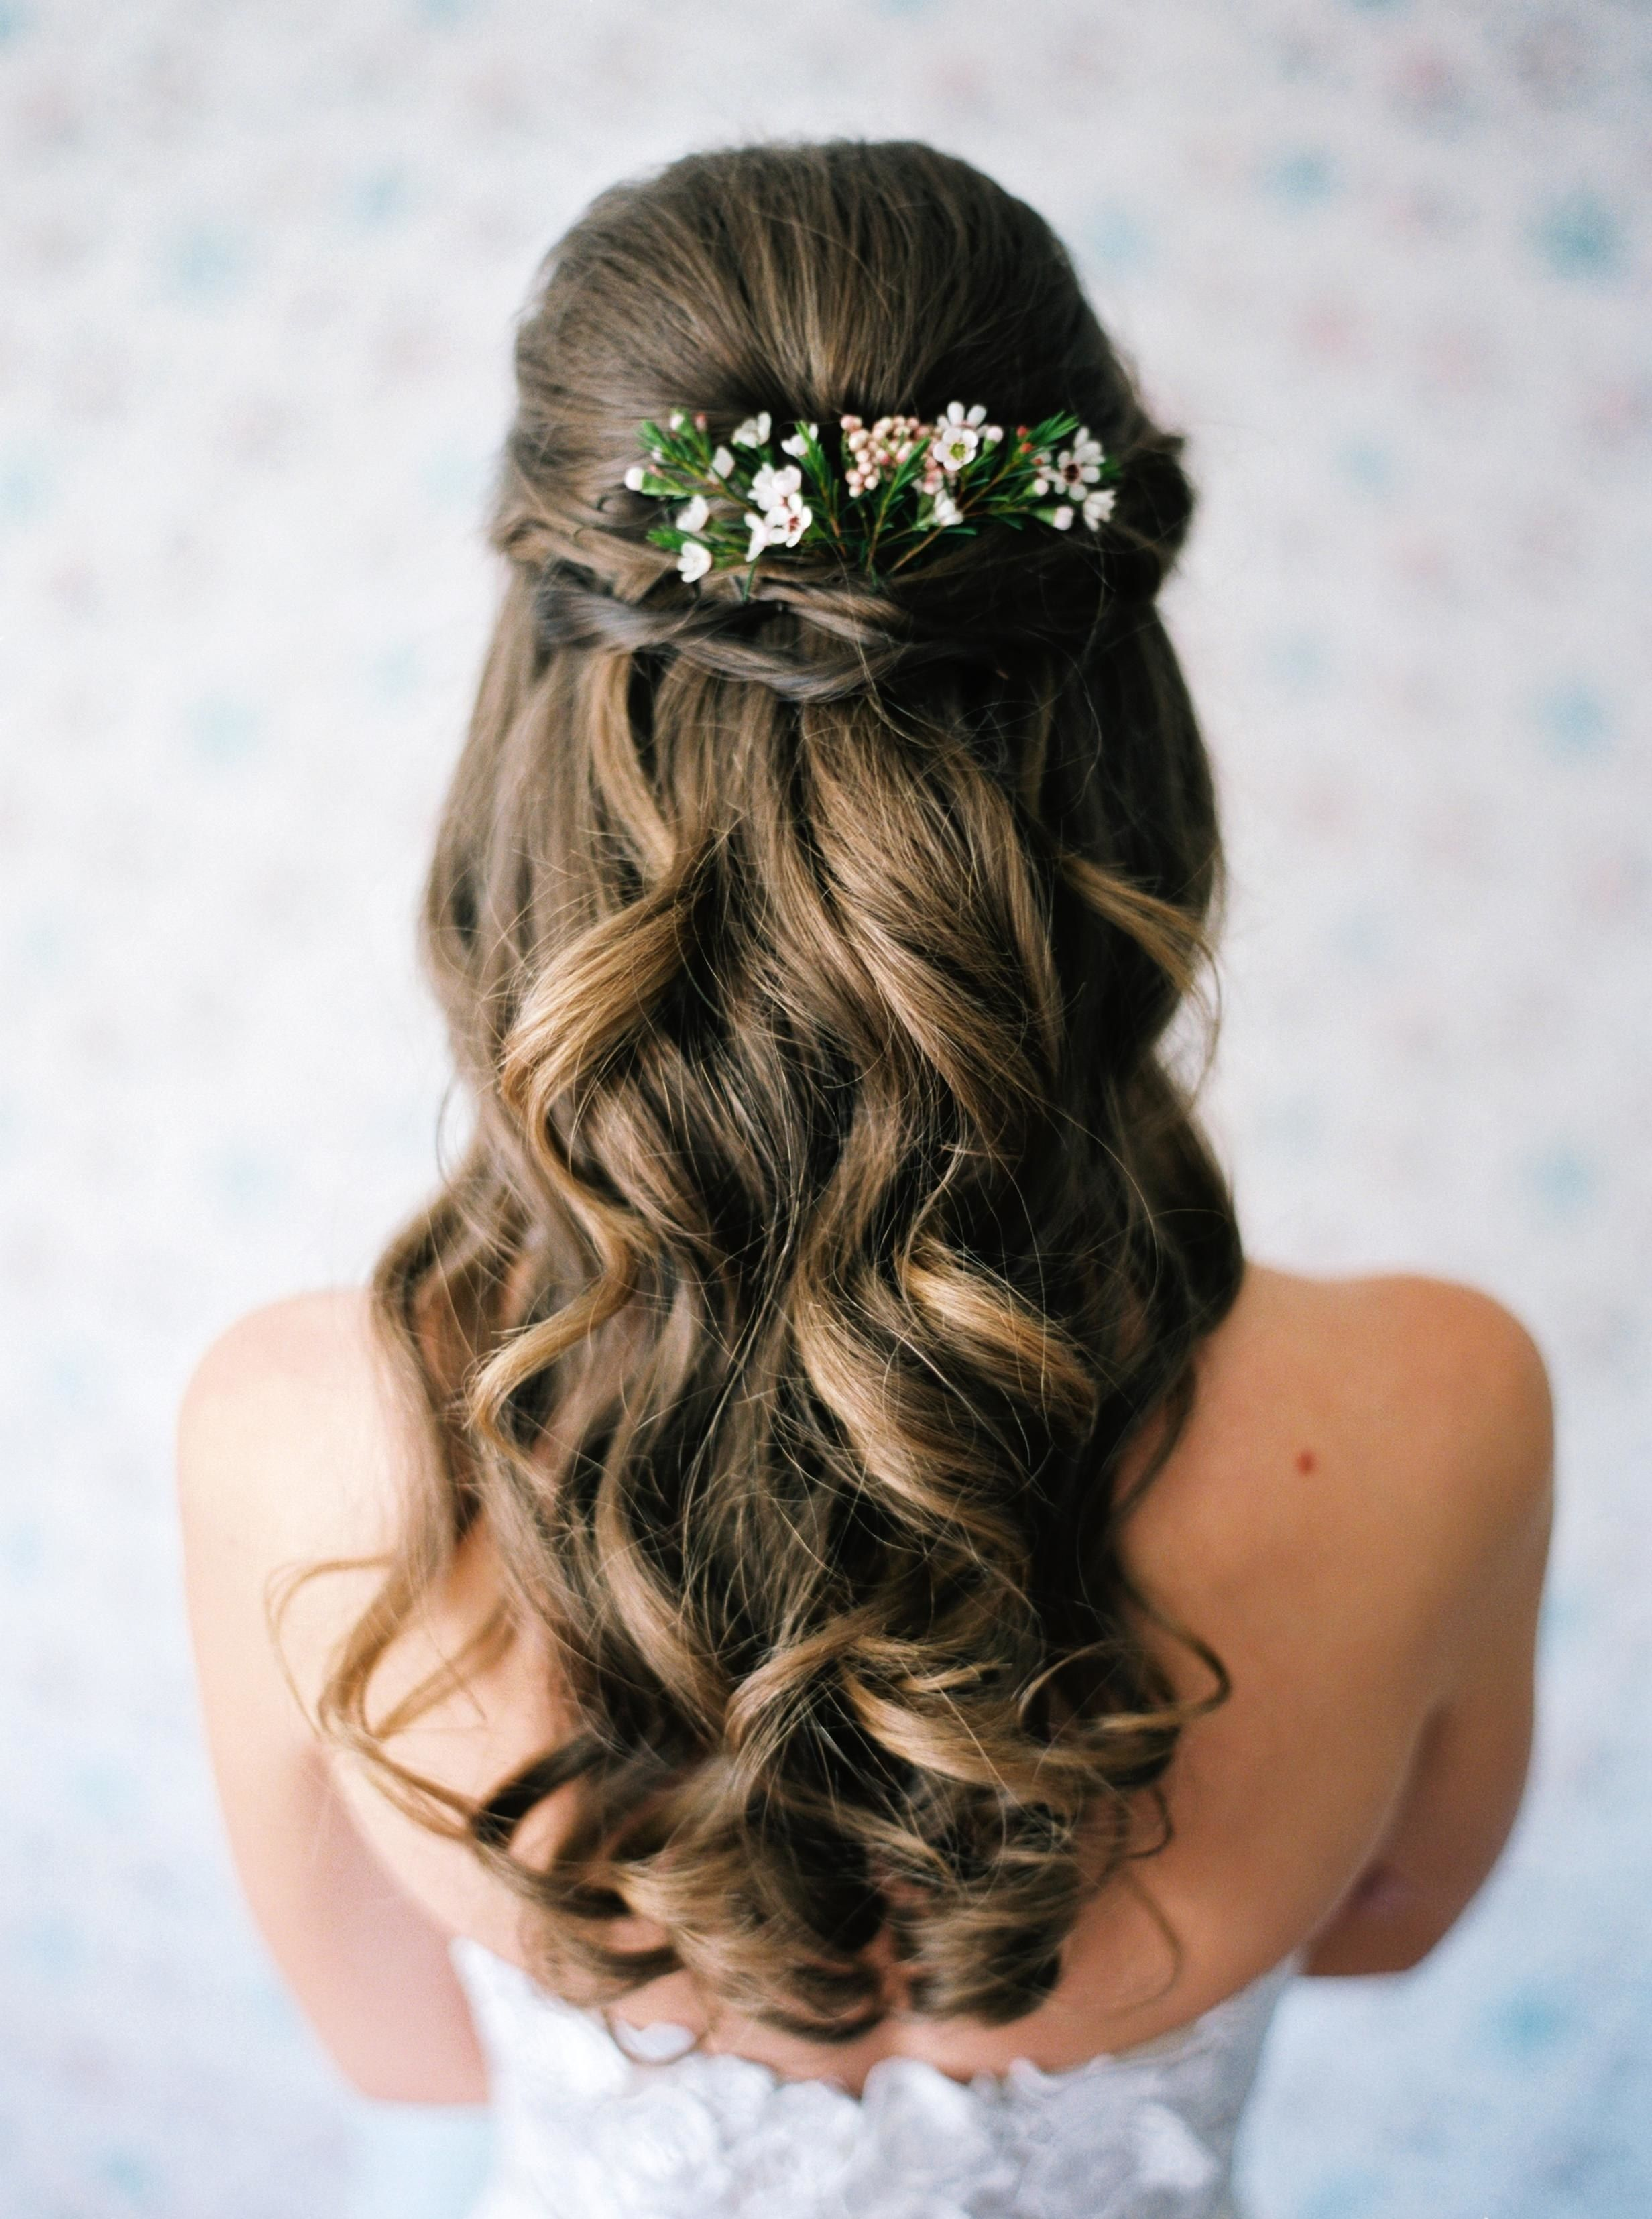 12 Earthy Wedding Hairstyles For The Spring Bride Brides Rustic Wedding Hairstyles Romantic Wedding Hair Wedding Hairstyles For Long Hair